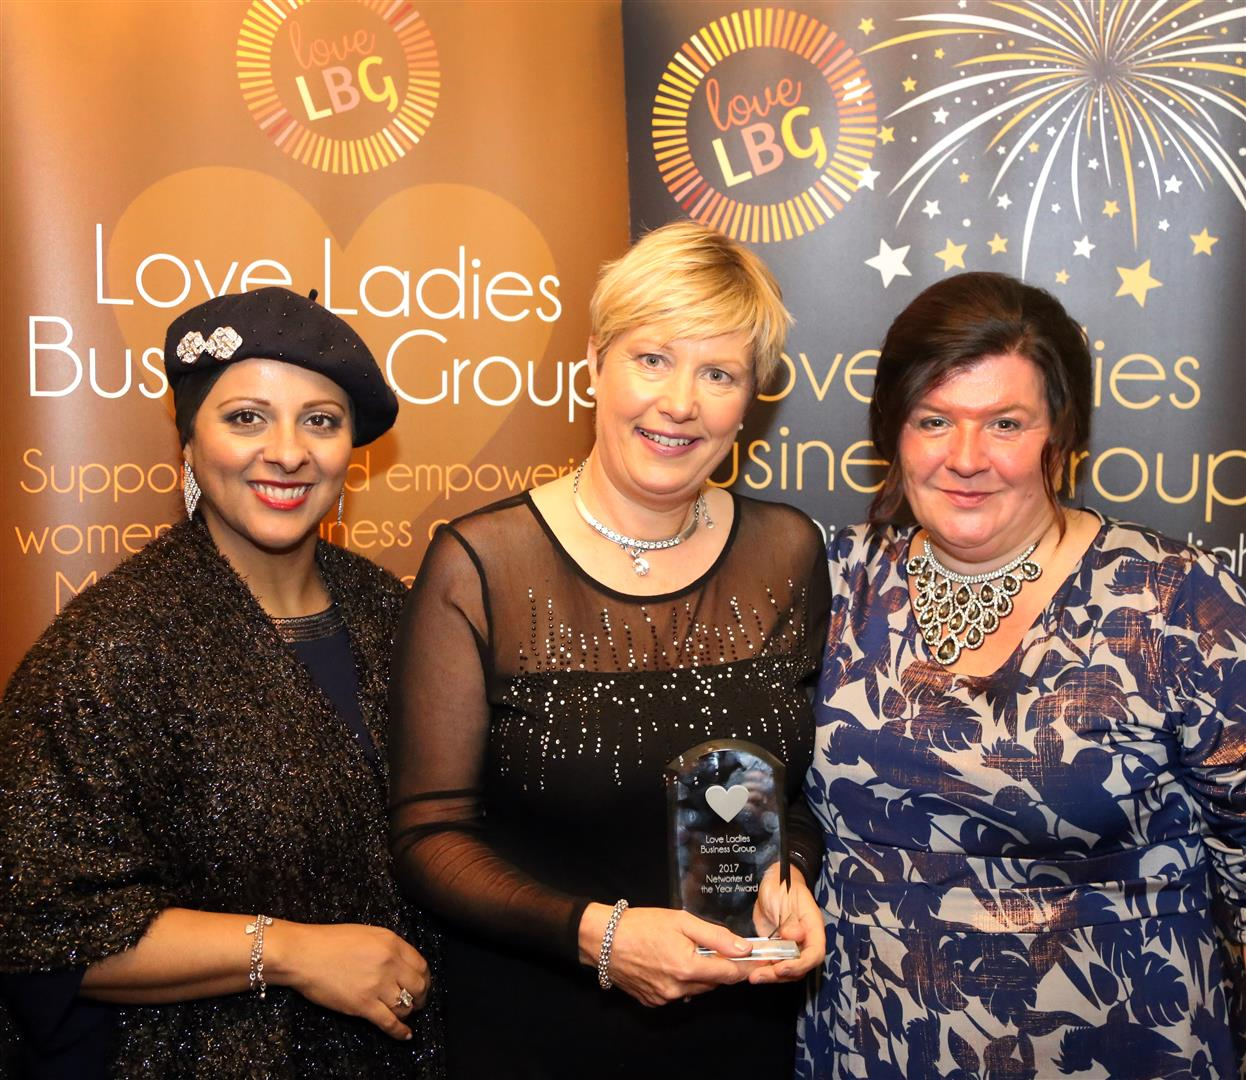 Sue Godfrey - Networker of the Year Award Winner